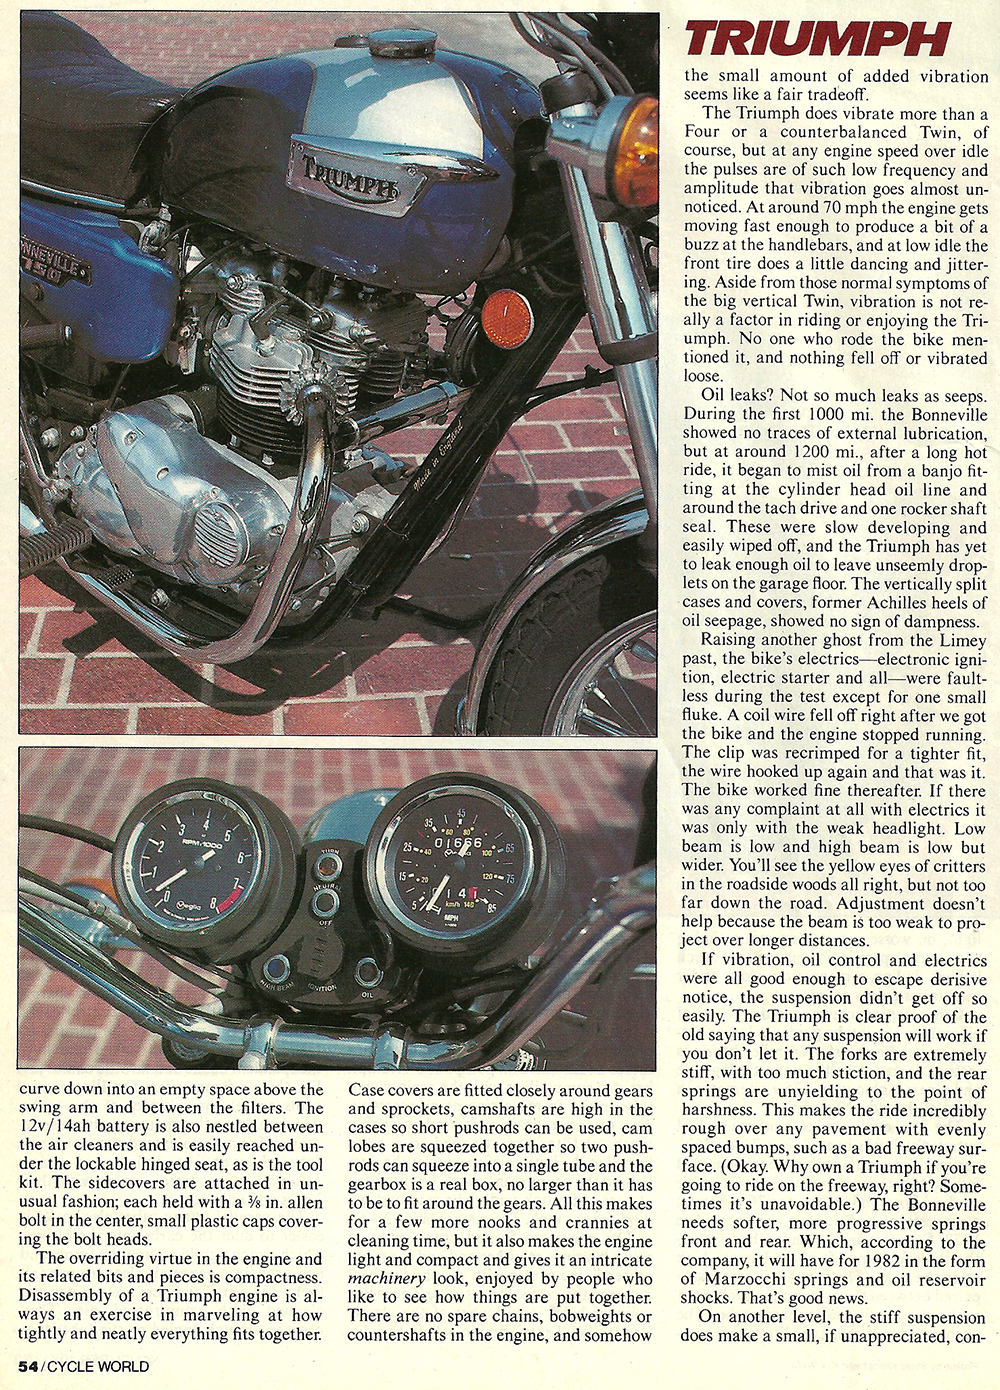 1981 Triumph 750 Bonneville road test 3.jpg